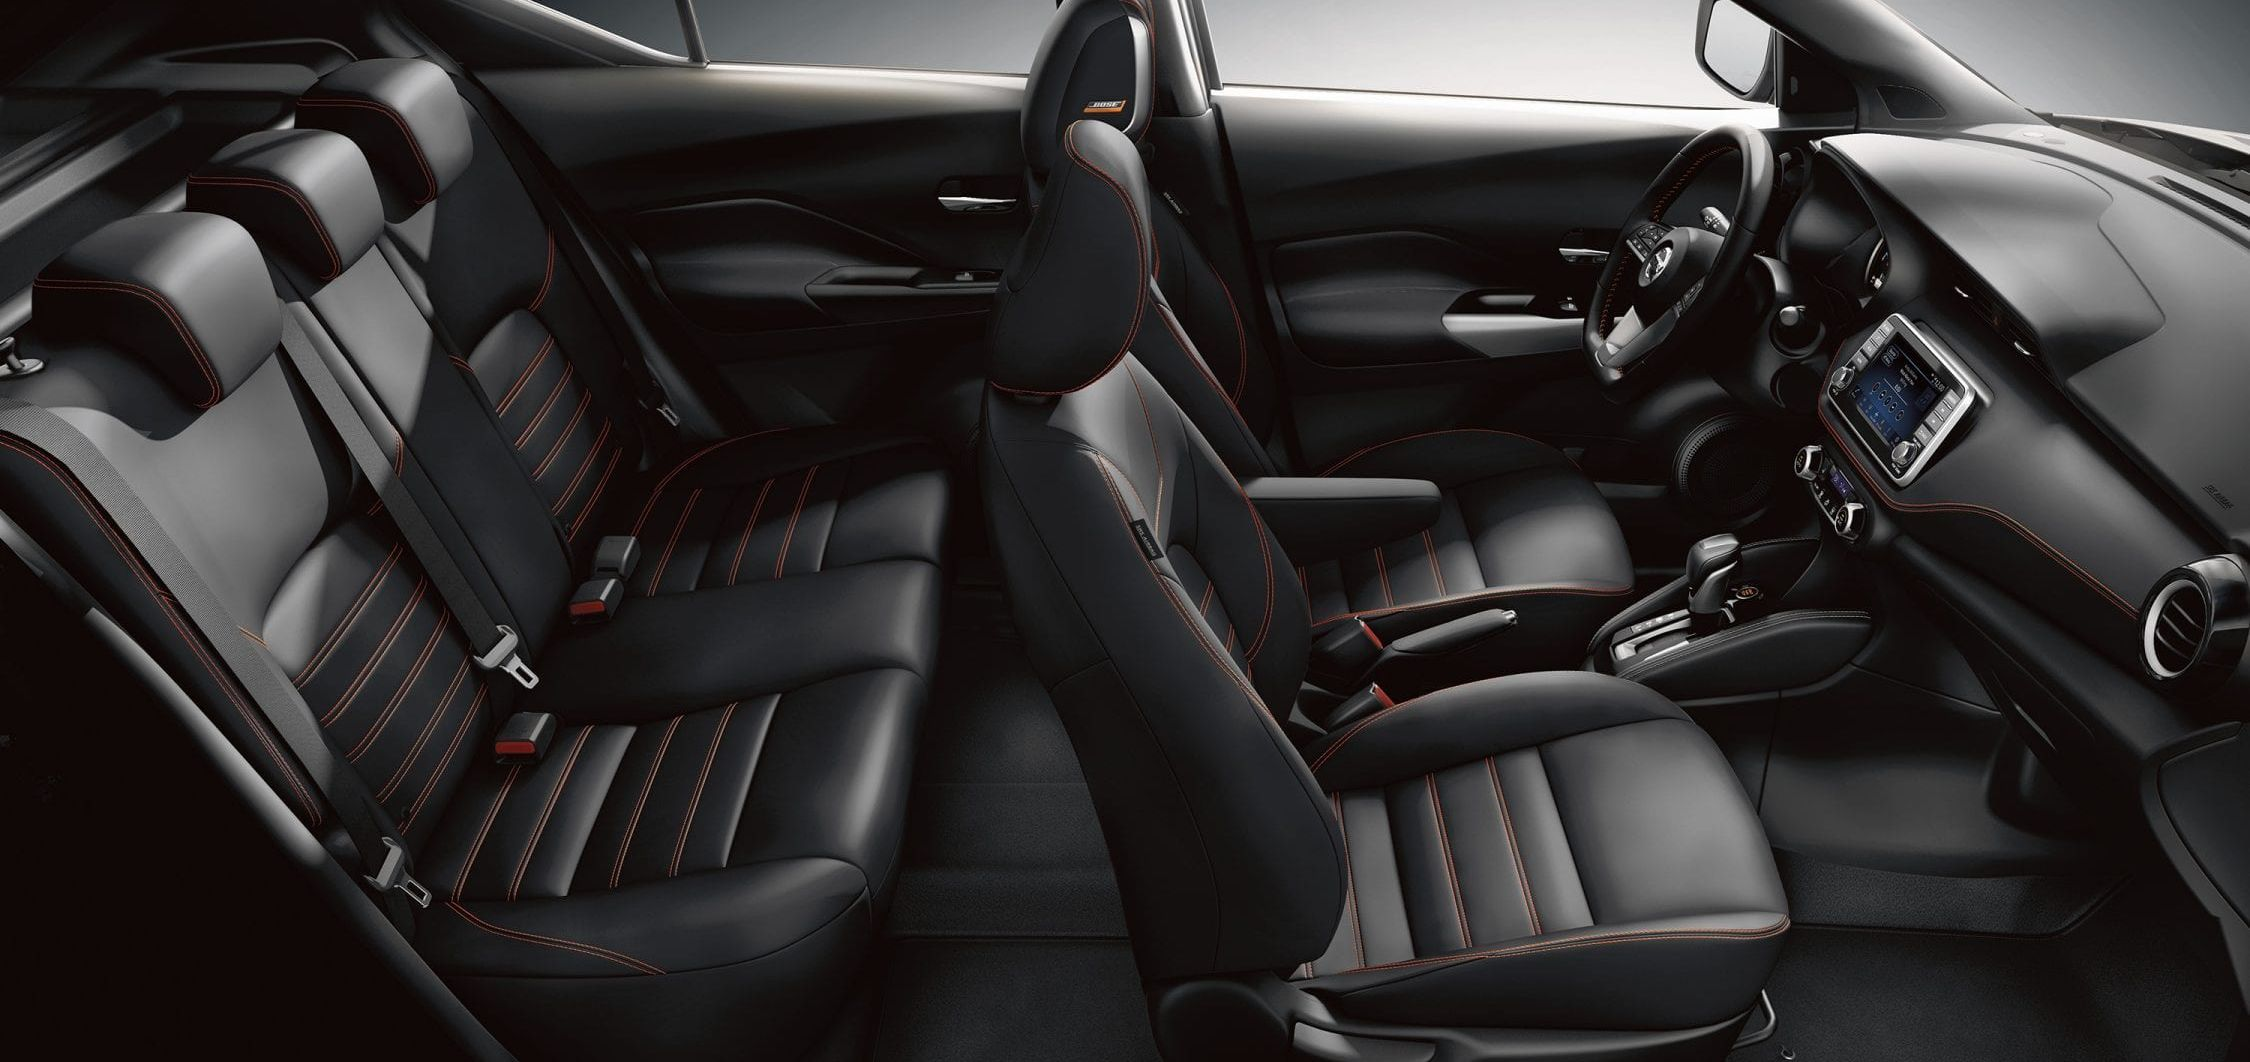 Spacious Interior of the 2019 Nissan Kicks